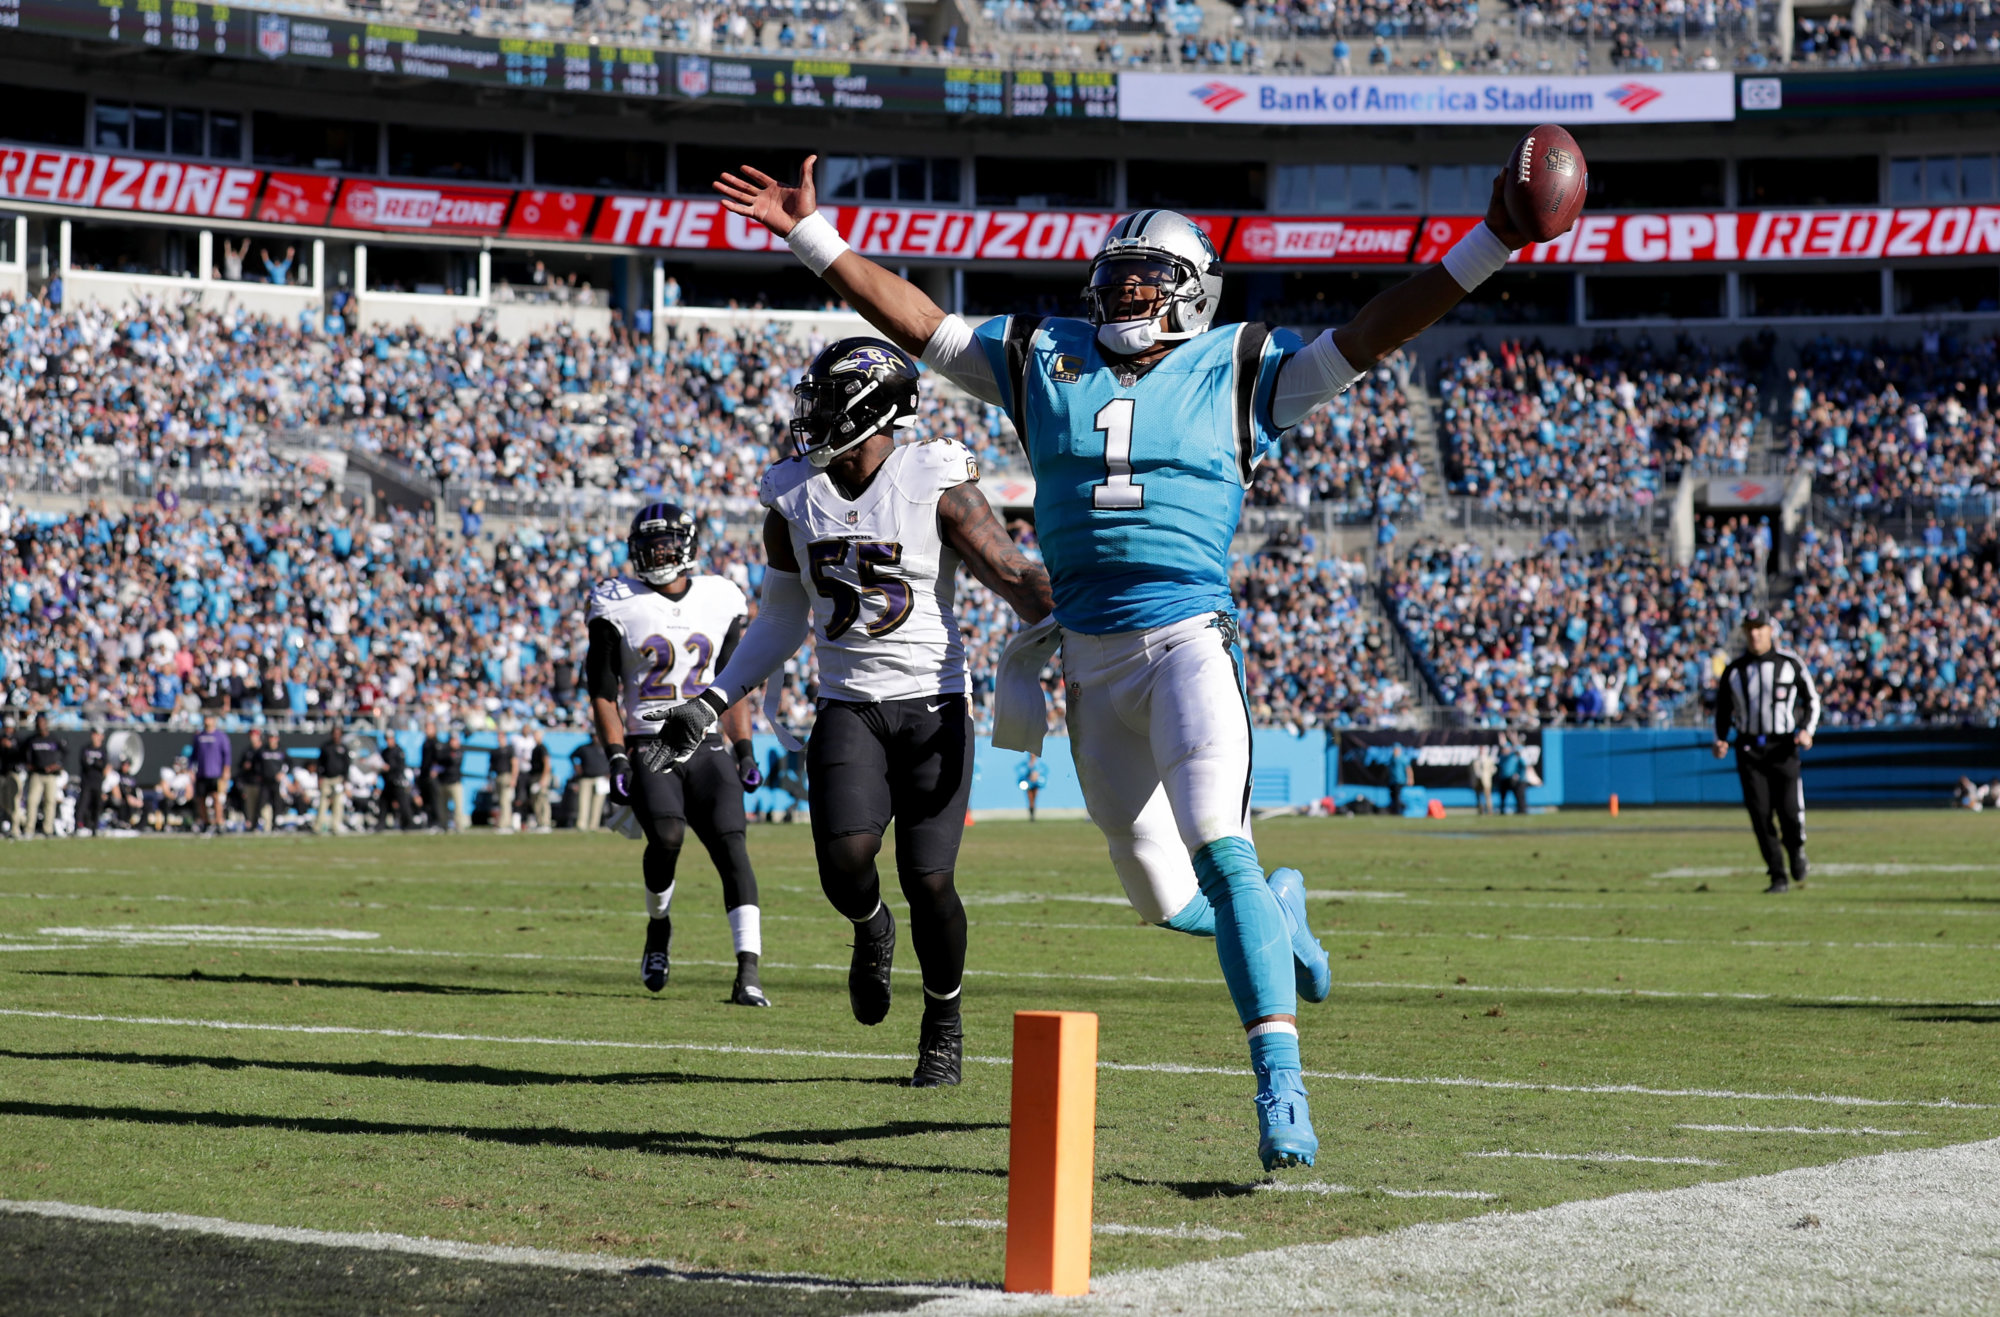 CHARLOTTE, NC - OCTOBER 28:  Cam Newton #1 of the Carolina Panthers scores a touchdown against the Baltimore Ravens in the fourth quarter during their game at Bank of America Stadium on October 28, 2018 in Charlotte, North Carolina.  (Photo by Streeter Lecka/Getty Images)